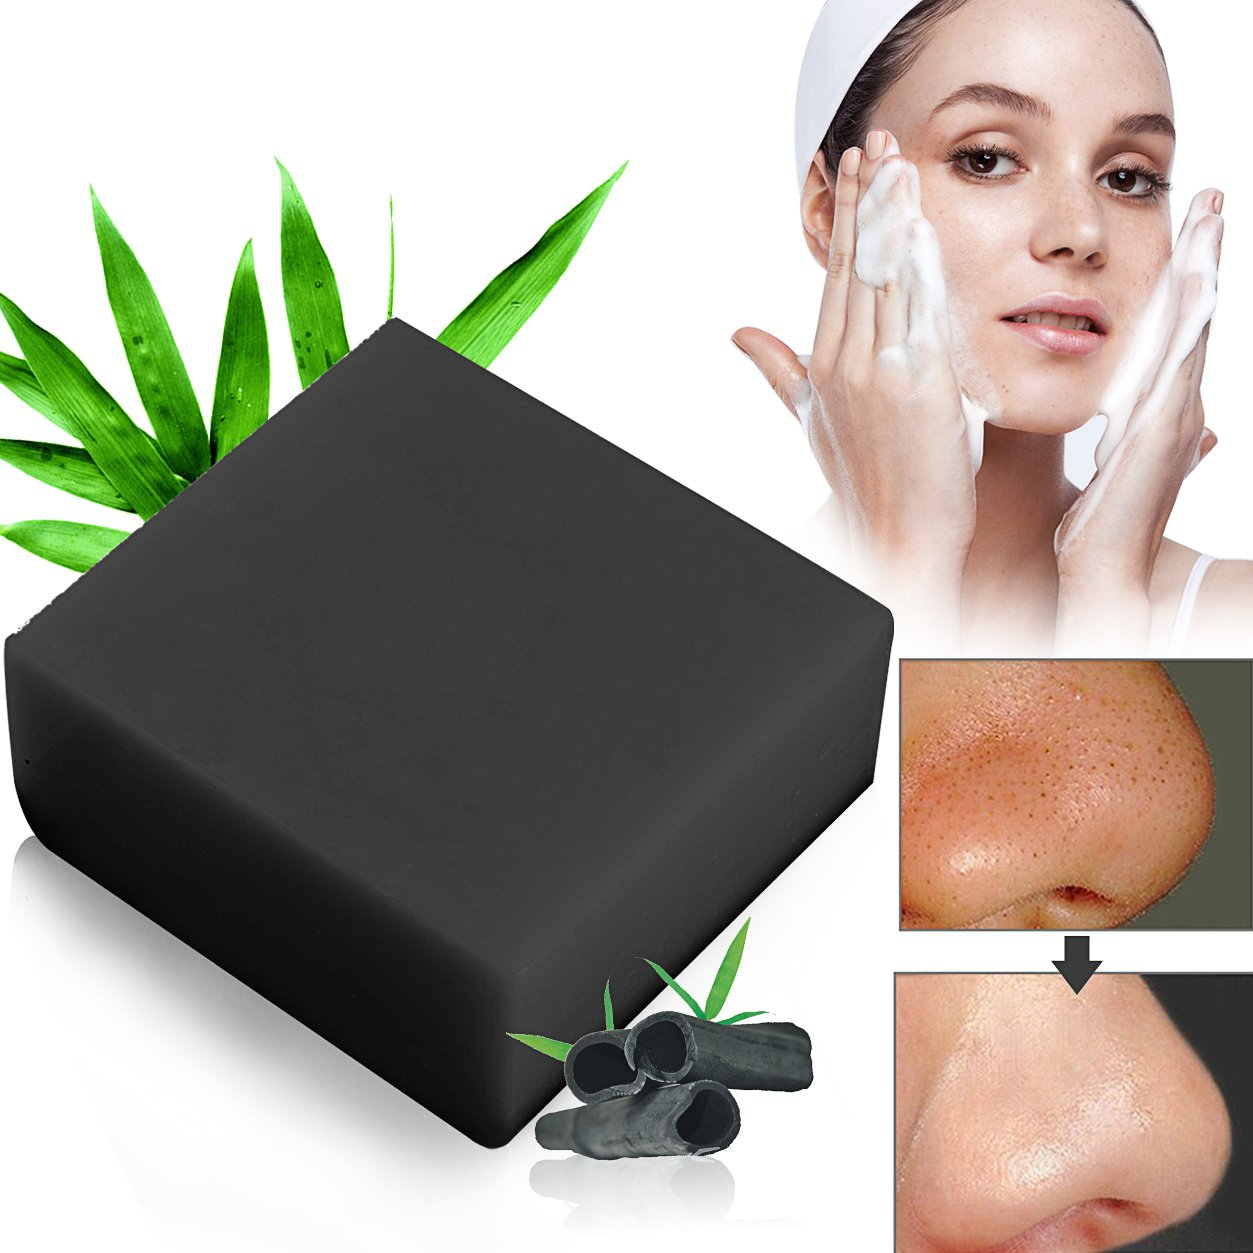 Bamboo Charcoal Handmade Bamboo Charcoal Soap Facial Soaps. Ldre AMAM Entschlack Face & Body Cleanser for Acne, Eczema, Facial Cleansing Treatment for Acne Prone Skin LDreamAM